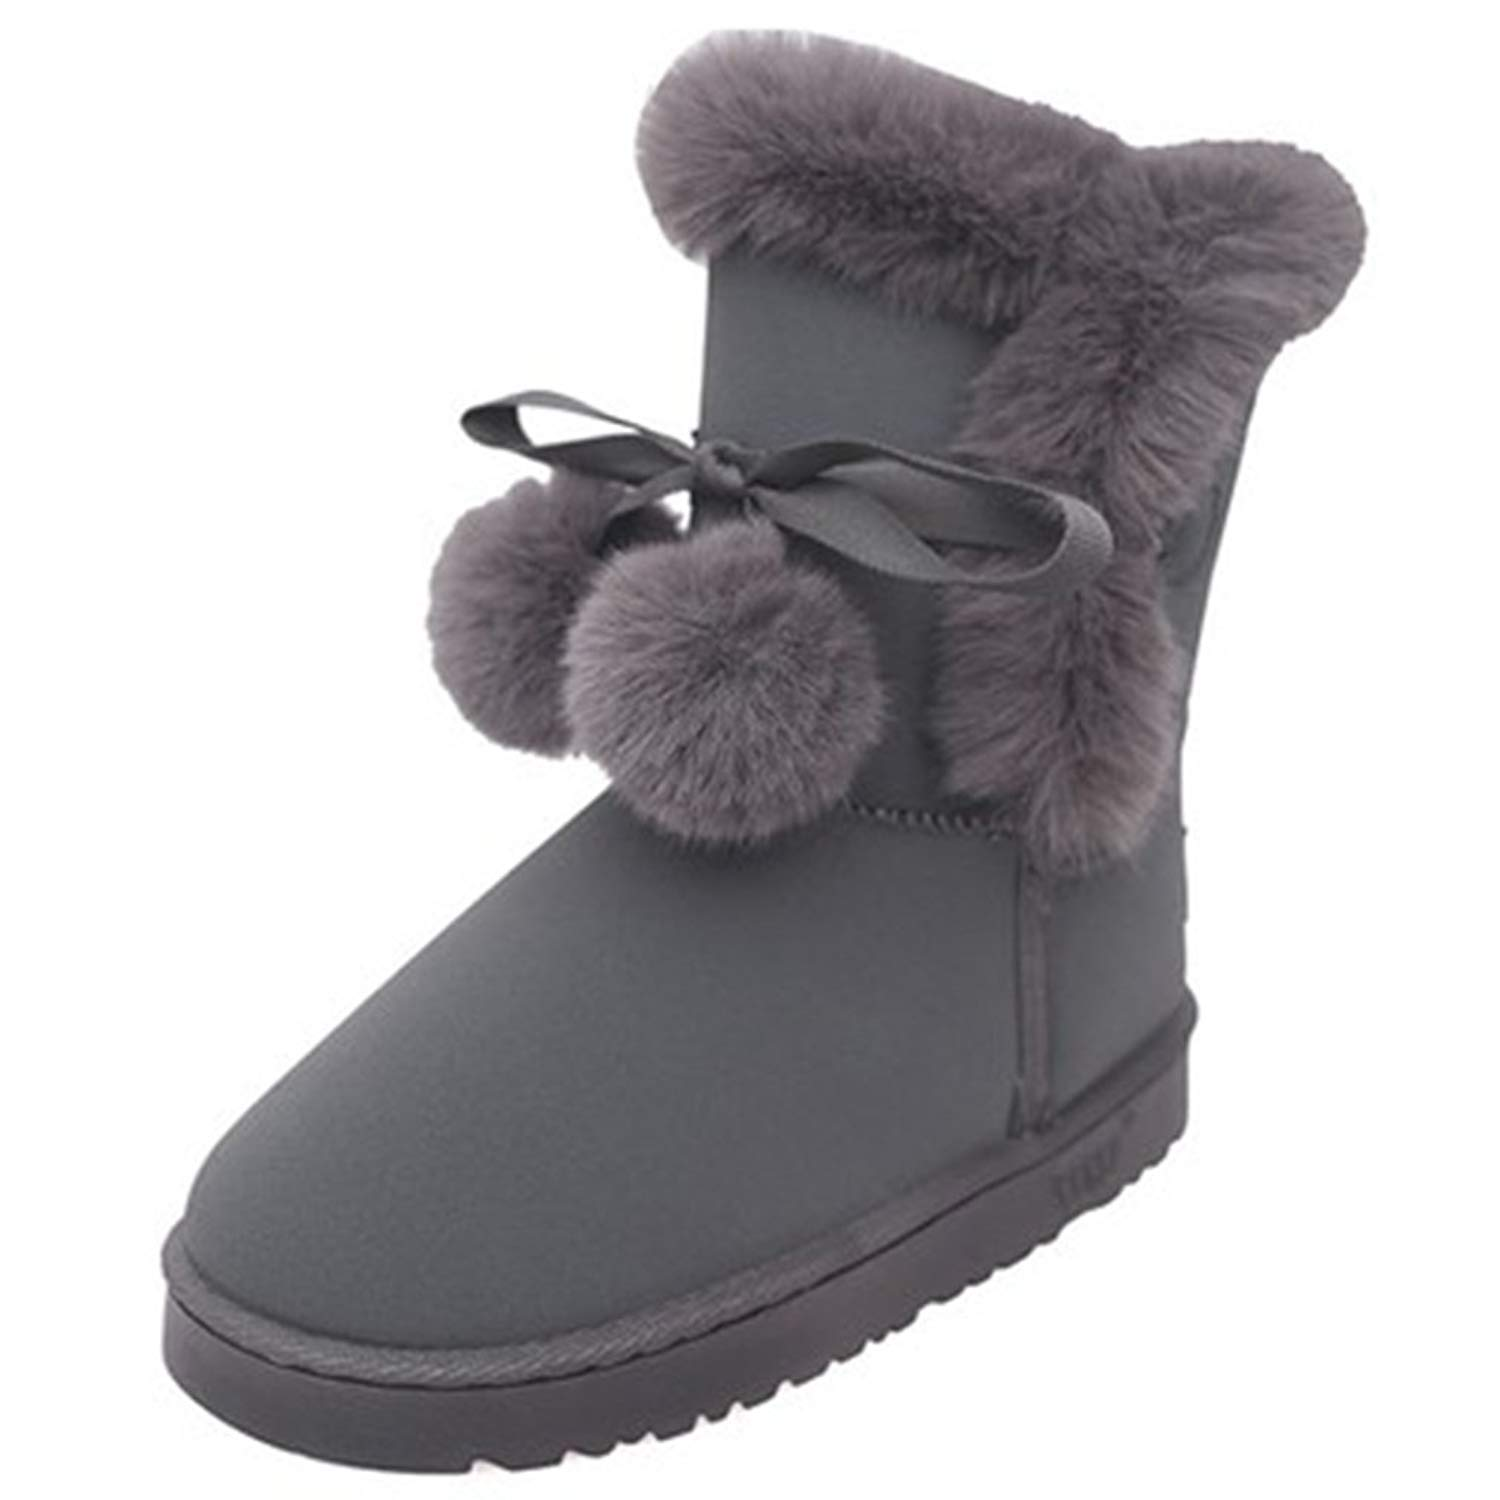 20c8bab4de3 Puma City Snow Boot Fur Womens Leather Boots   Shoes - Black. GIY Womens  Arctic Cute Warm Snow Boots Mid Calf Wide Calf Waterproof Suede Fur Lined  Outdoor ...